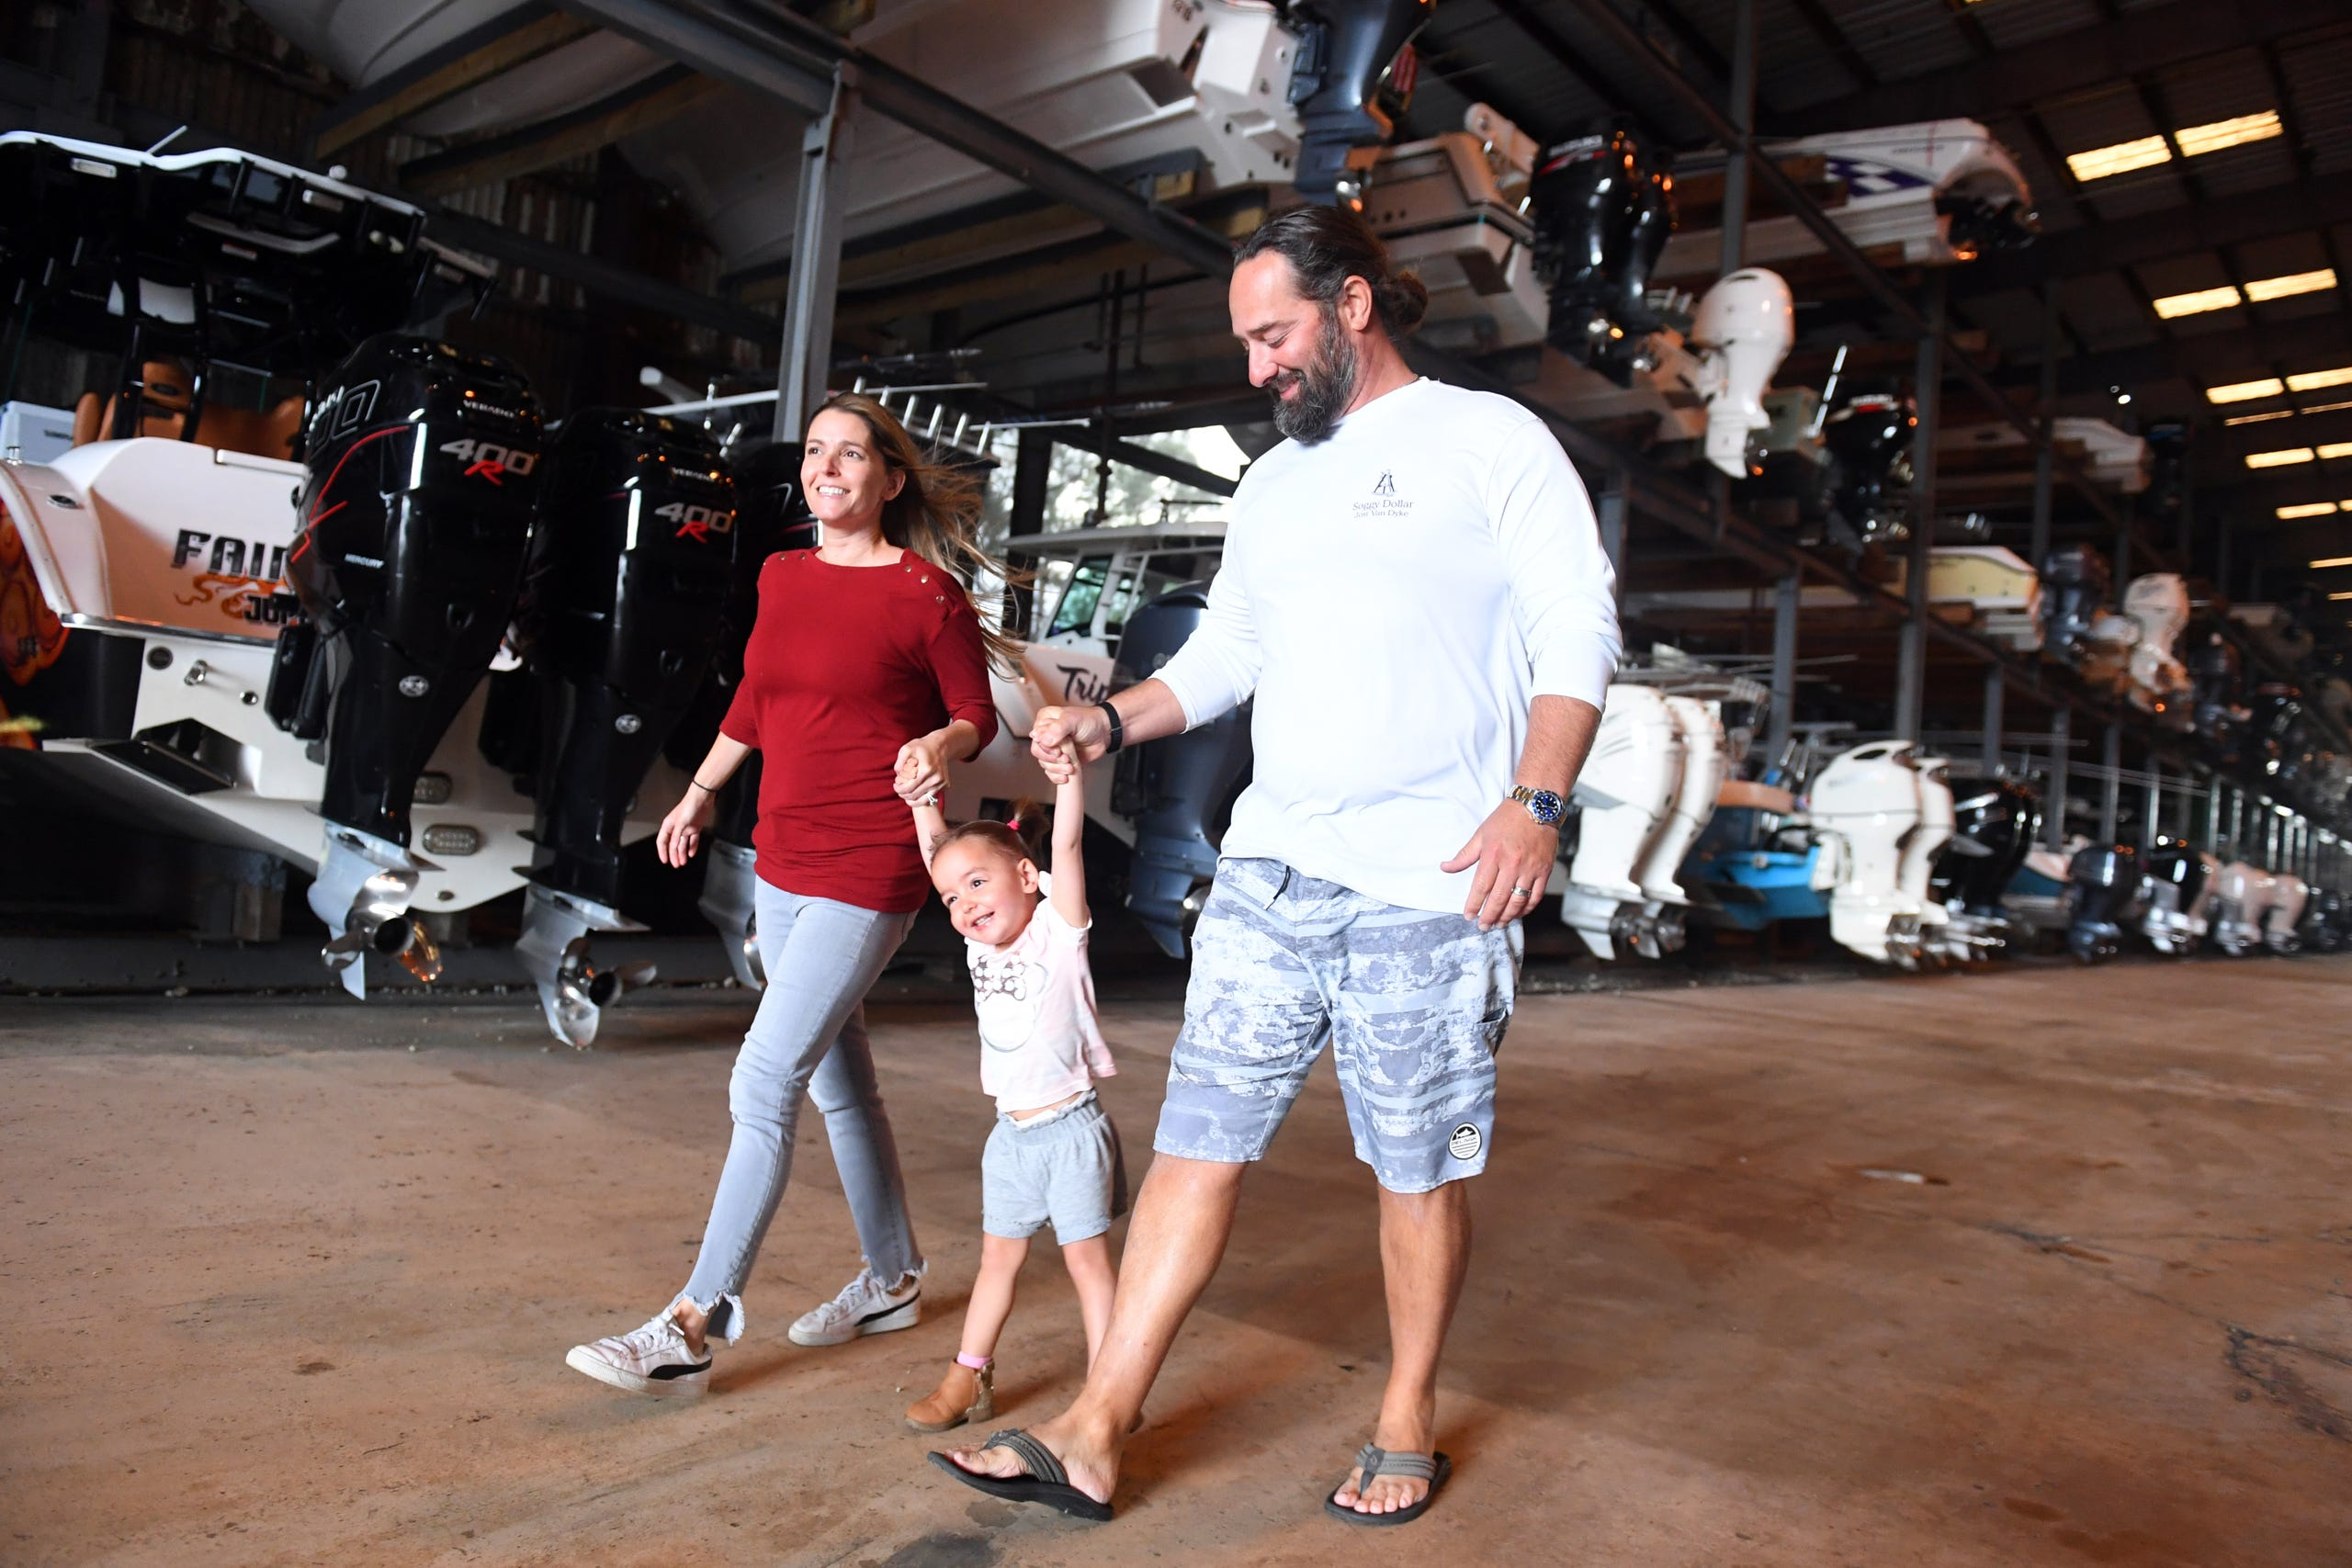 Jenny and Austin Cameron, of Austin, Texas, walk with their daughter Coltie, 2, through the stacks of boats in dry dock at Meridian Marina, on Tuesday, March 9, 2021, in Palm City. The Camerons are the new owners of the marina and are preparing for extensive repairs to the existing storage facility, adding additional storage, boat sales, a repair shop and a waterfront restaurant.